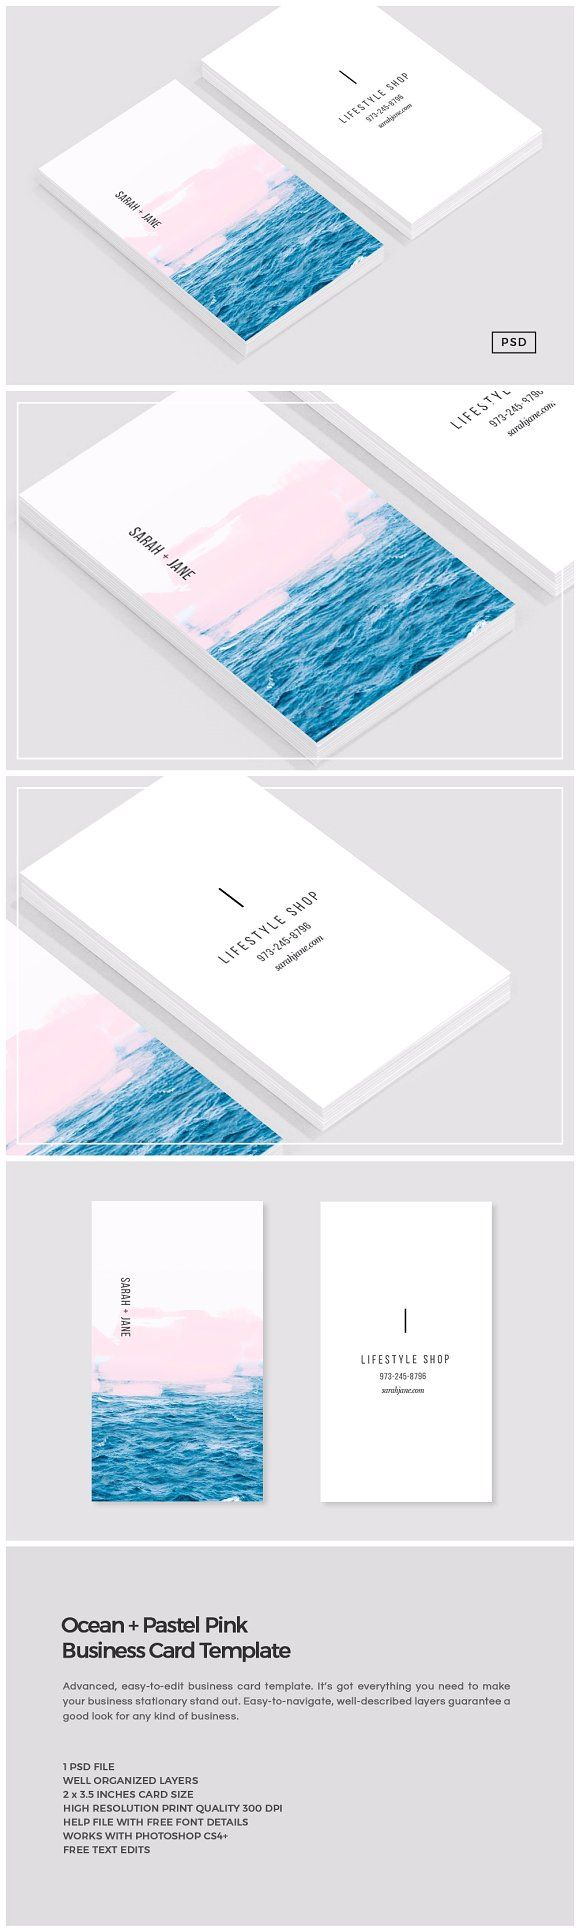 Ocean pink business card template carto cartes de visita e visita ocean pink business card template by the design label on creativemarket business cards design reheart Image collections